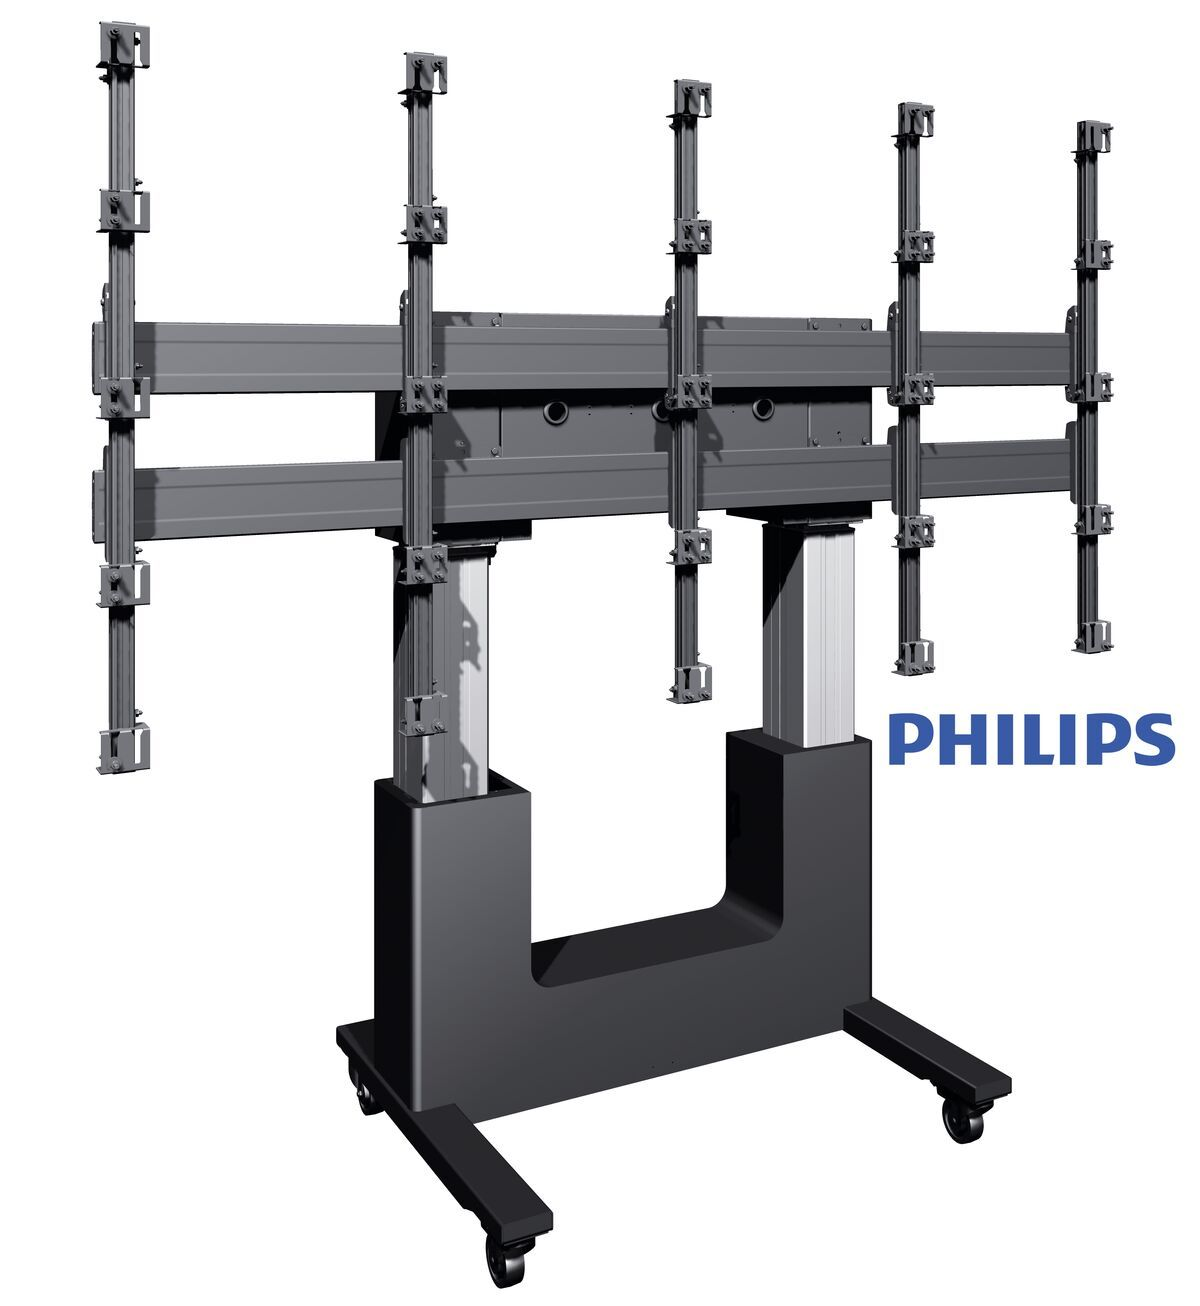 Vogel's TLWE78002 motorized trolley for Philips FHD 137BDL9115 - Product